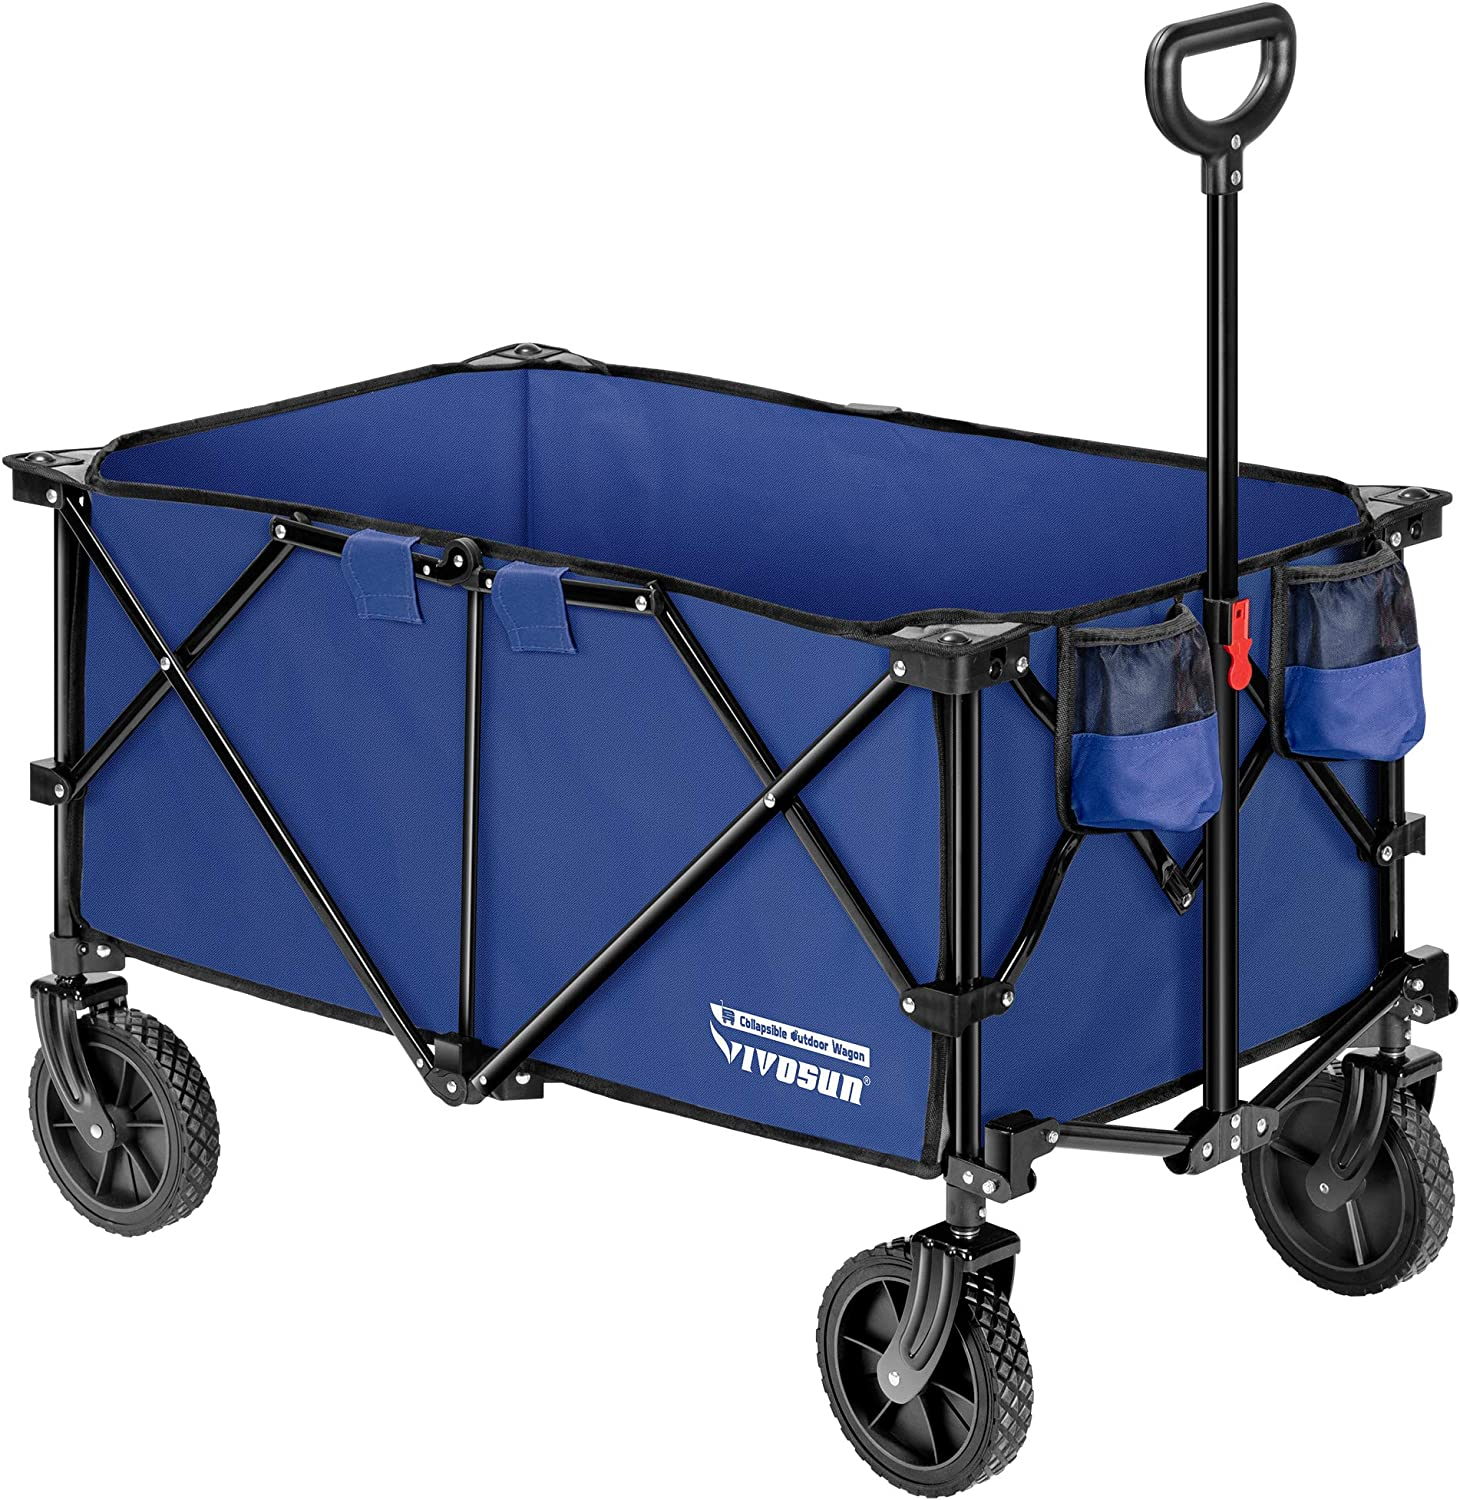 VIVOSUN Heavy Duty Folding Collapsible Cam Limited price Outdoor Wagon Utility Max 82% OFF